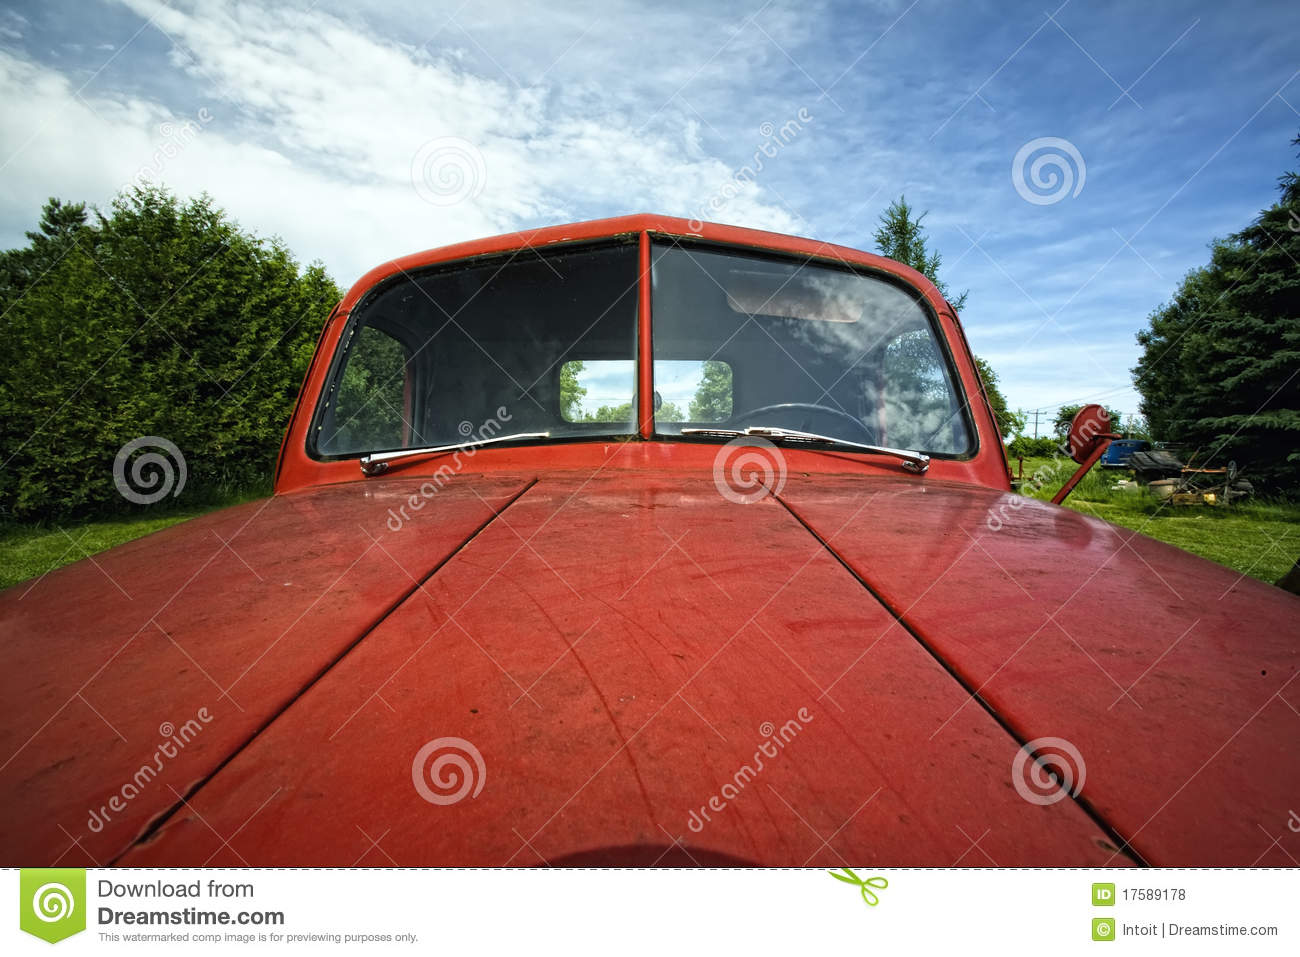 Old Red Antique Junker Car Stock Photo - Image of metal, body: 17589178